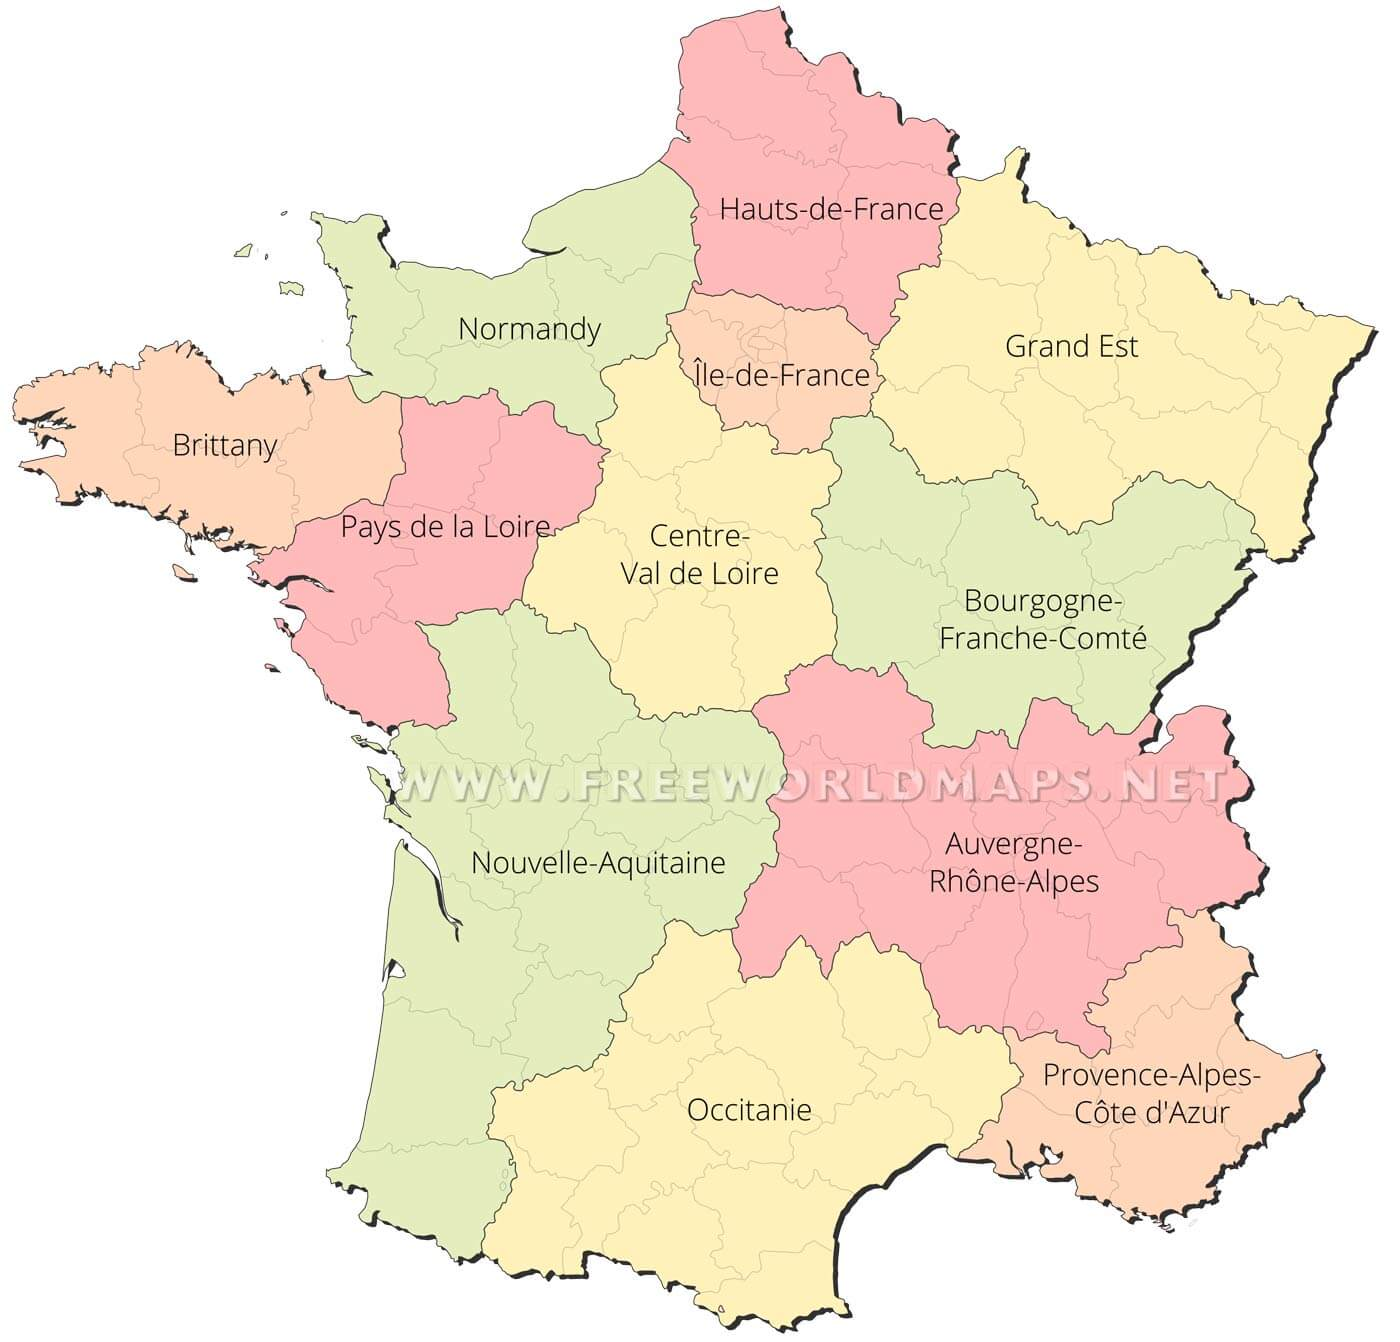 Outline Political Map Of France.France Political Map